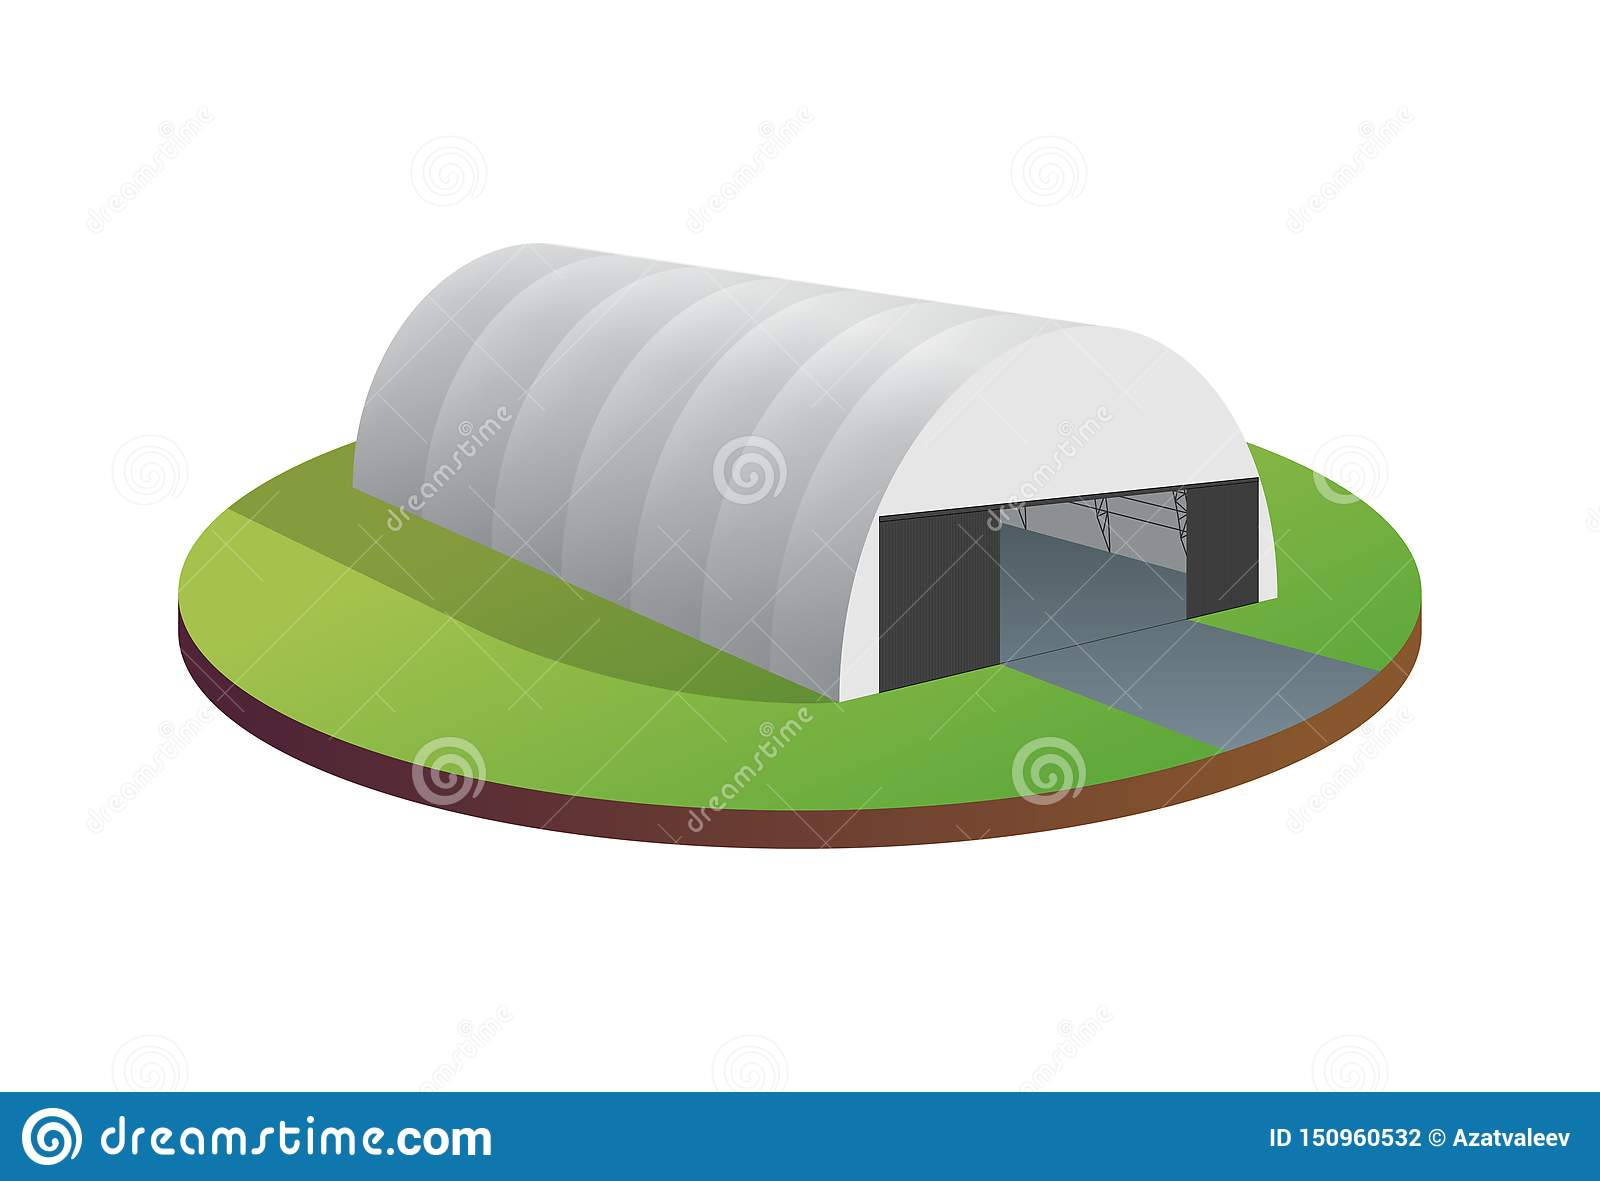 Awning tarpaulin tent temporary warehouse exhibition tunnel hall aircraft hangar. Barn construction building wireframe